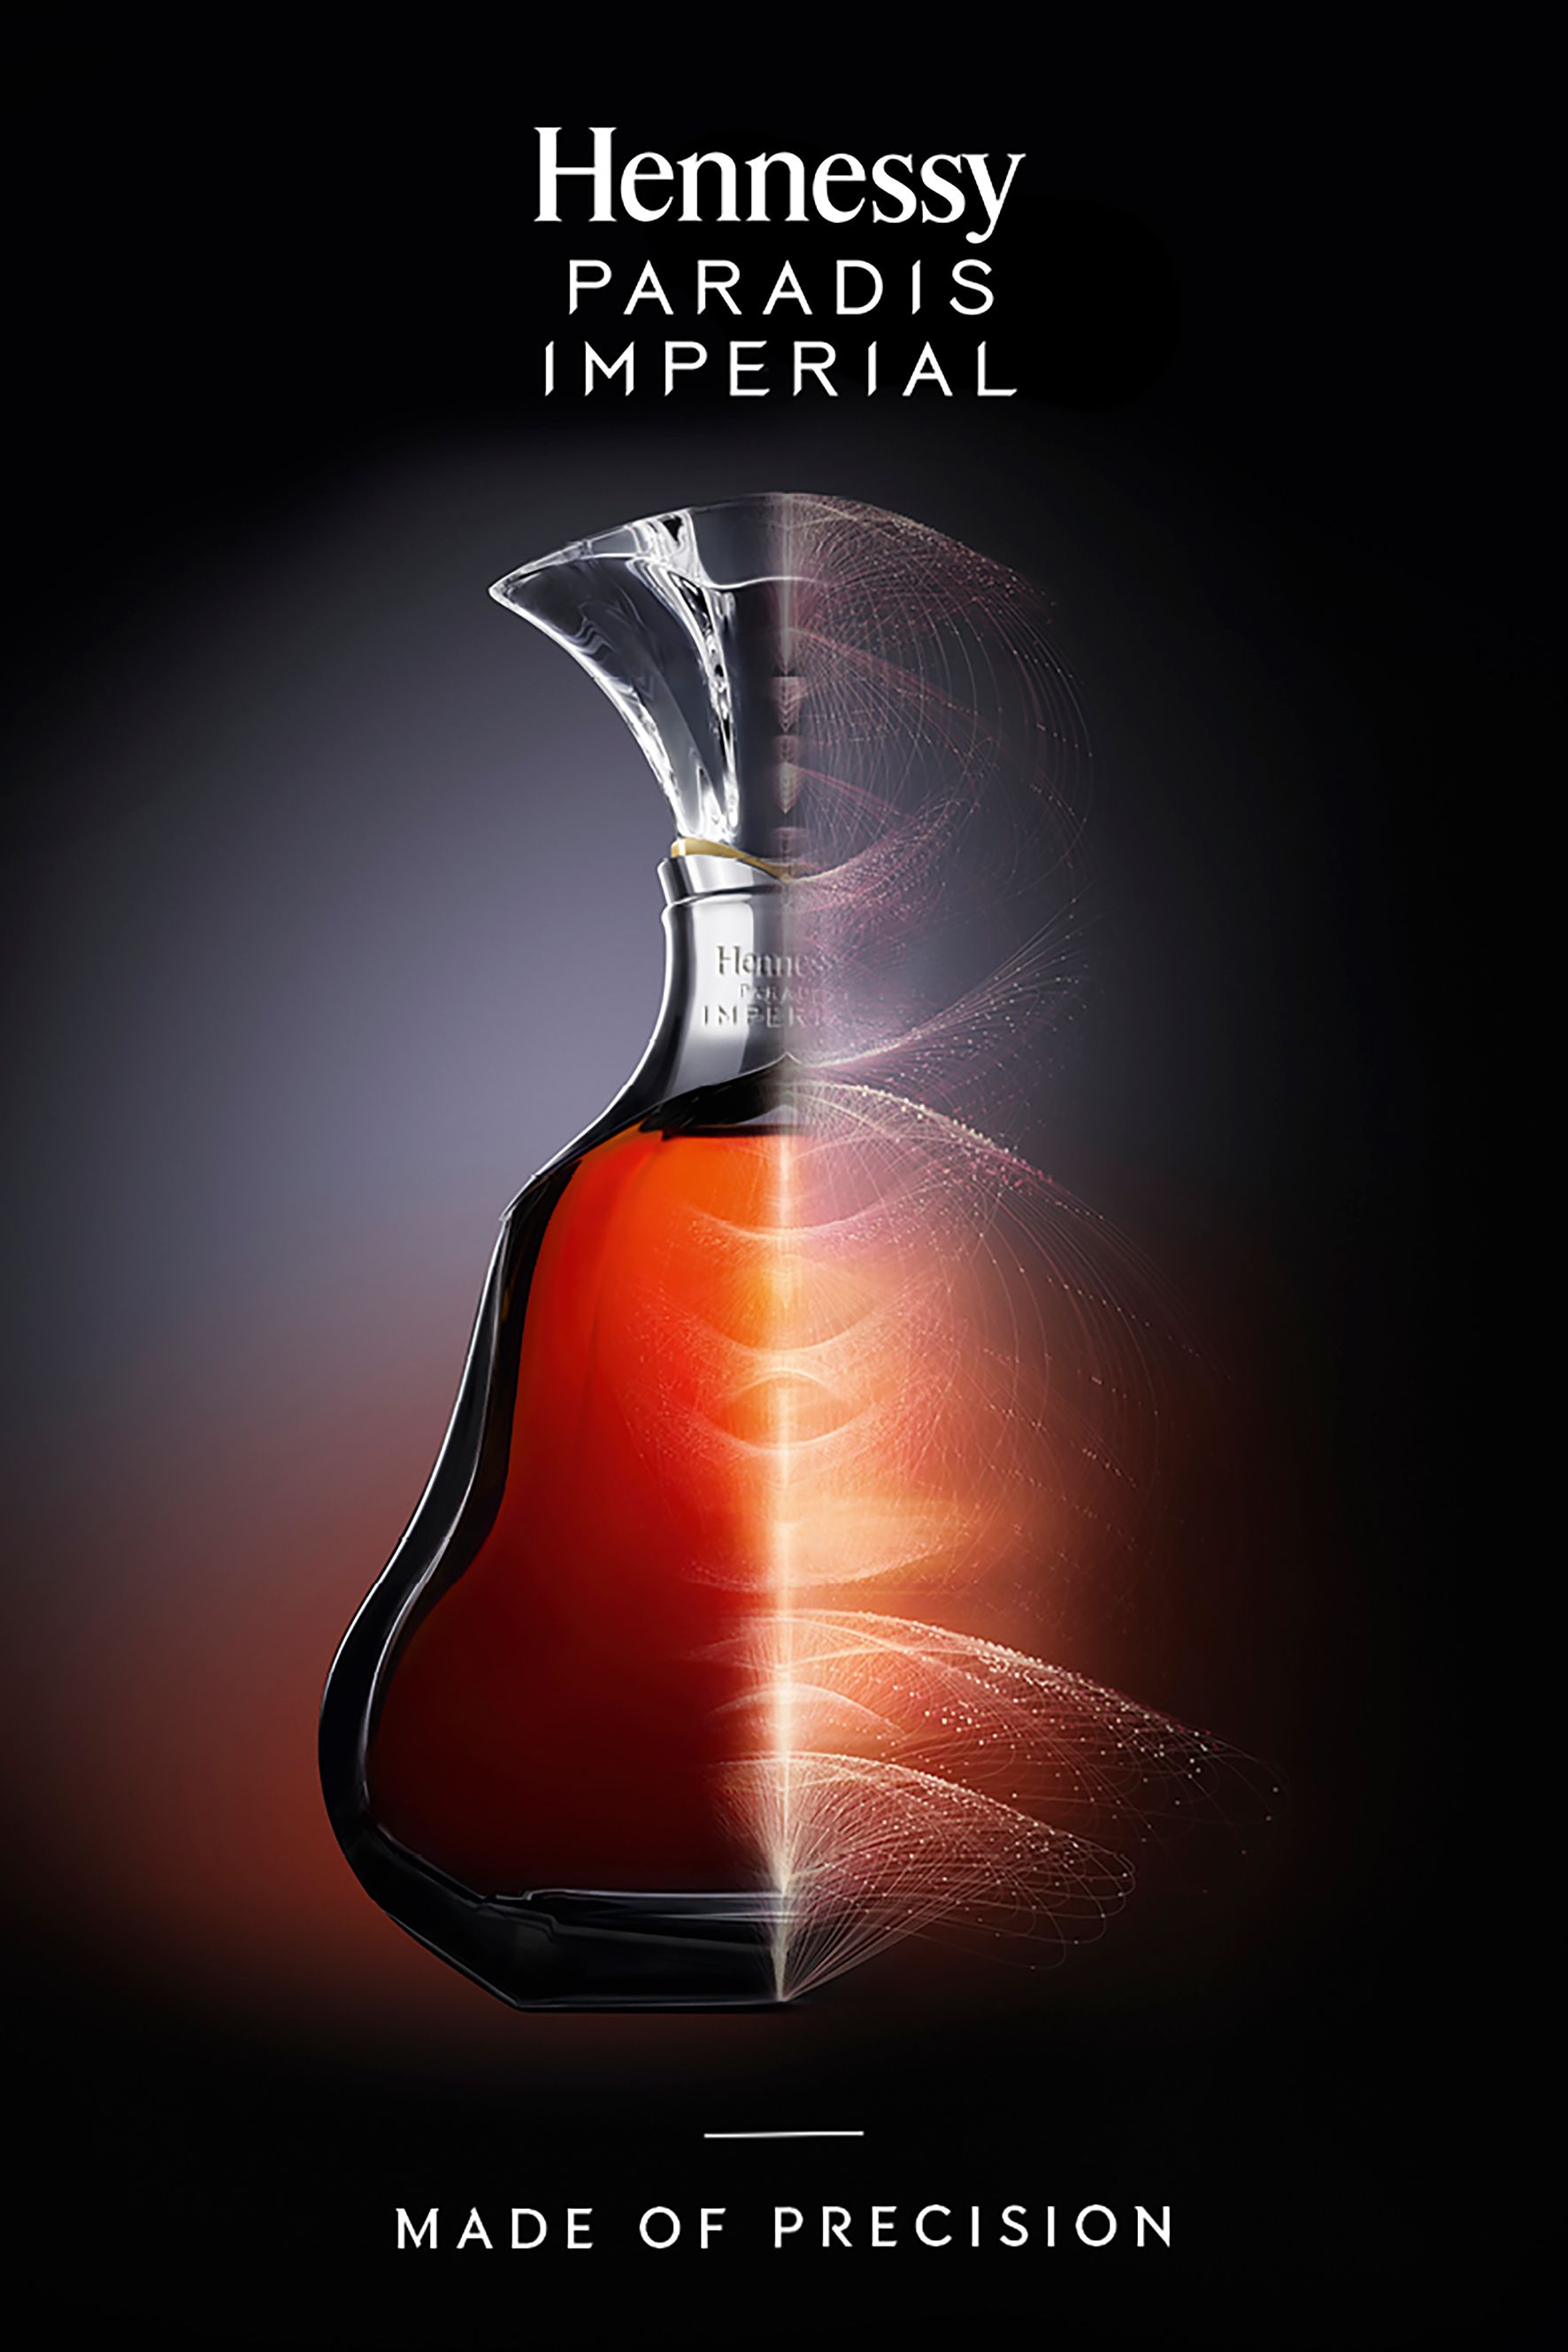 Hennessy Paradis Impérial campaign with logo applied